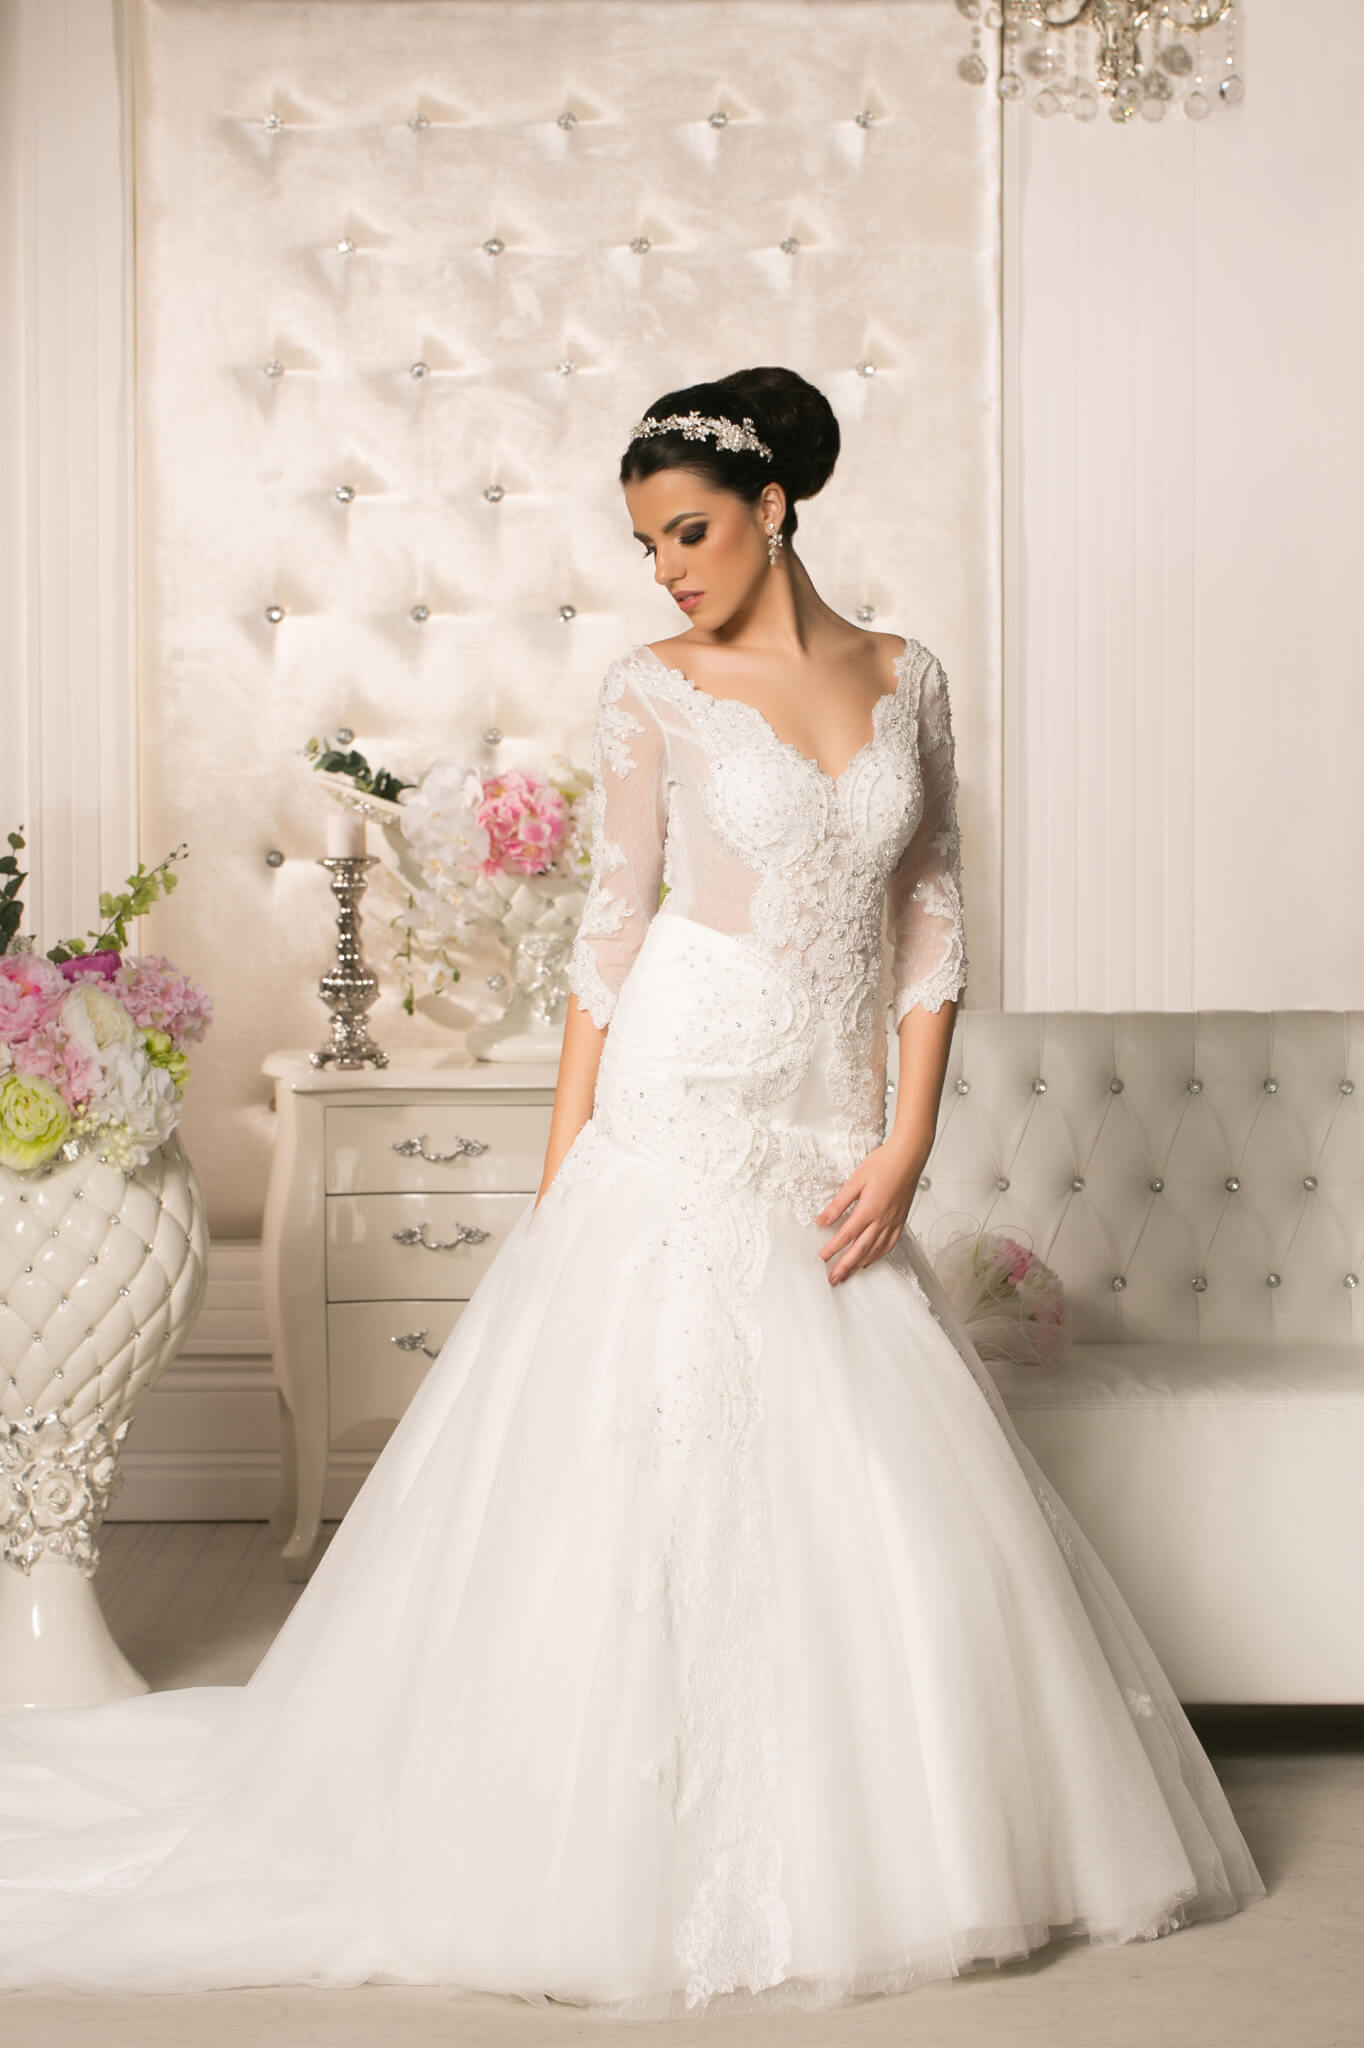 Best Dry Cleaners NYC, Wedding Dress Alterations NYC